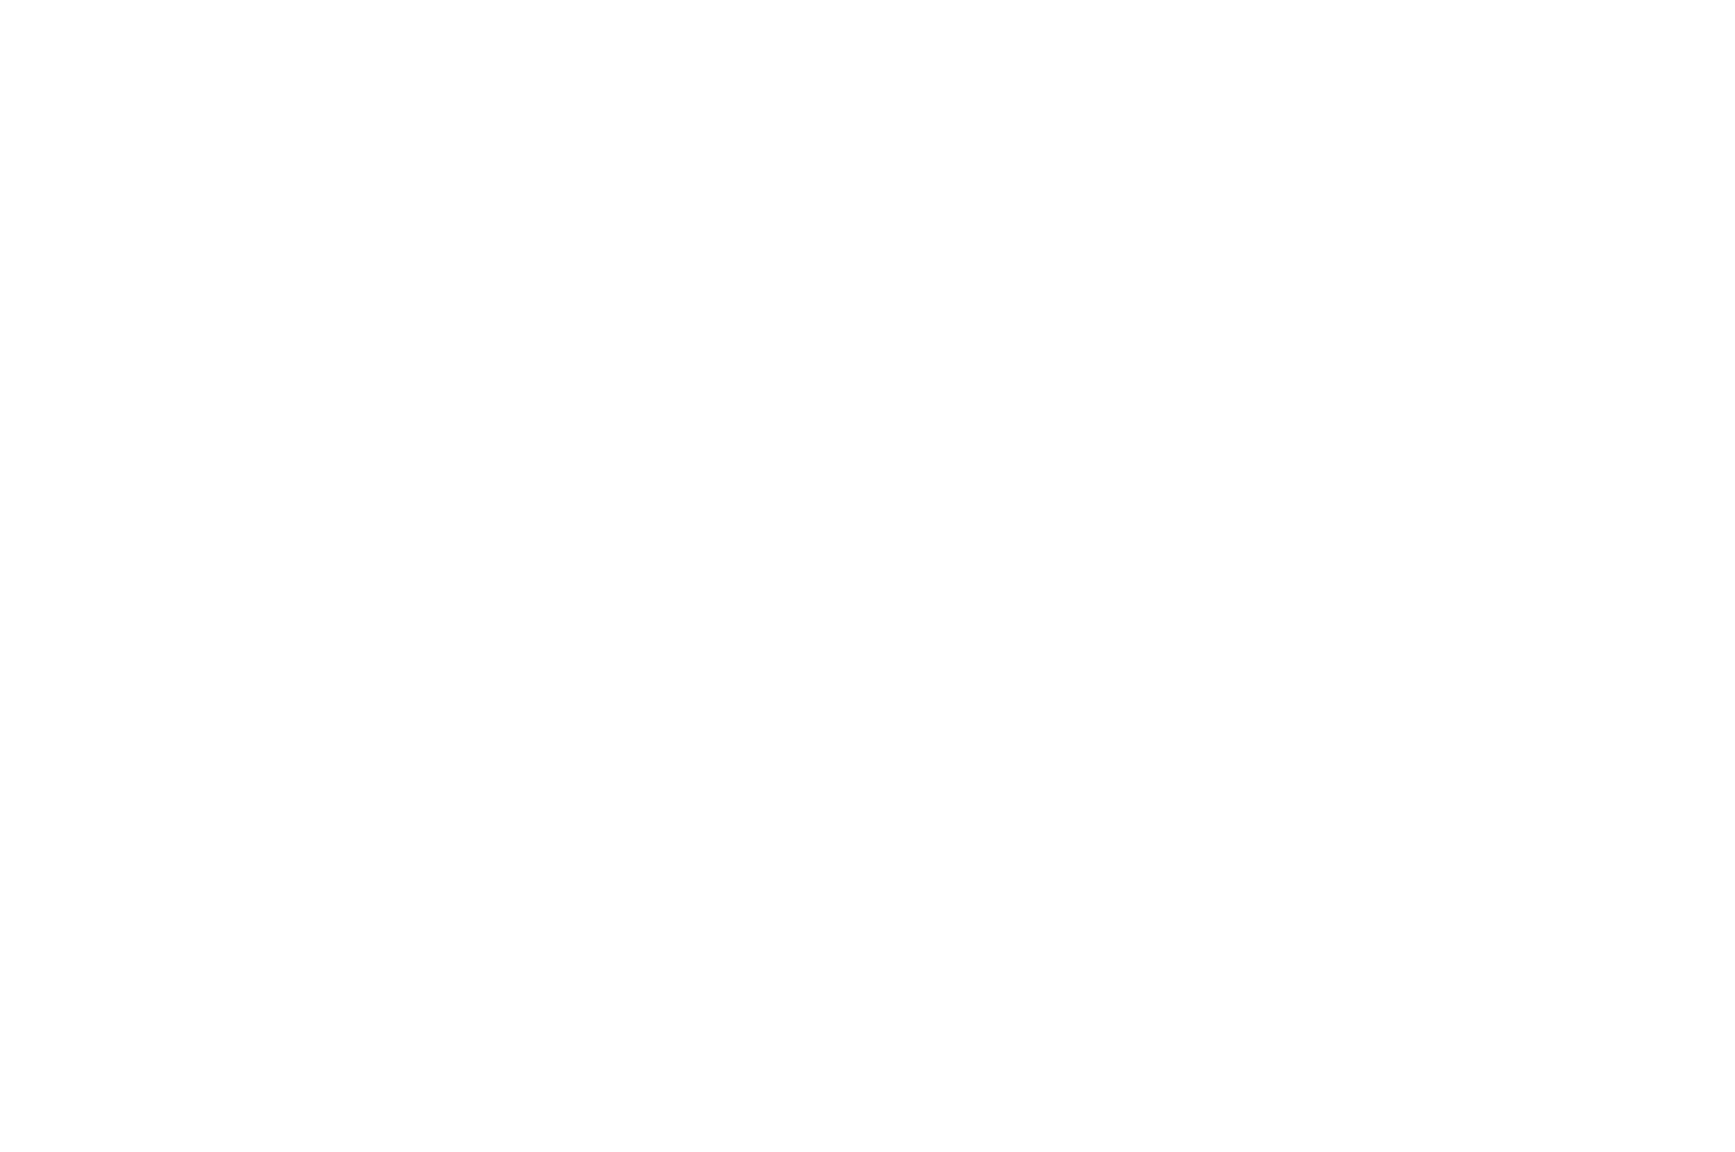 ICVM Best Documentary Award